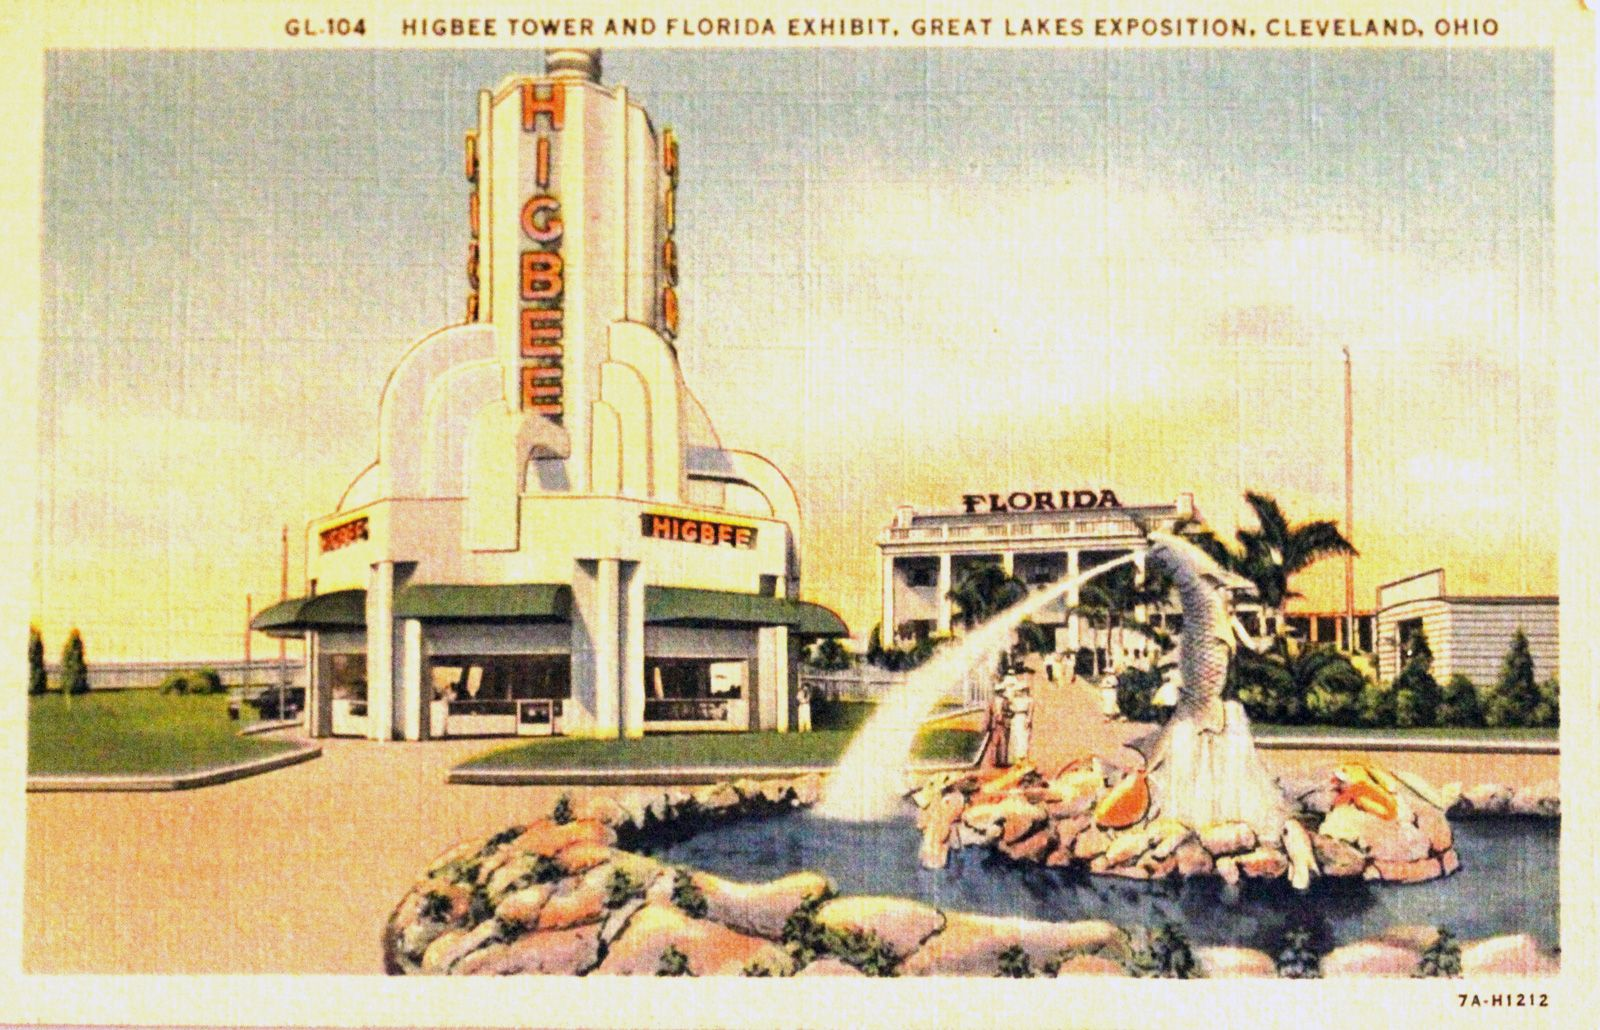 Higbee Tower and Florida Exhibit. The Great Lakes Exposition was held in Cleveland, Ohio in 1936 and 1937.